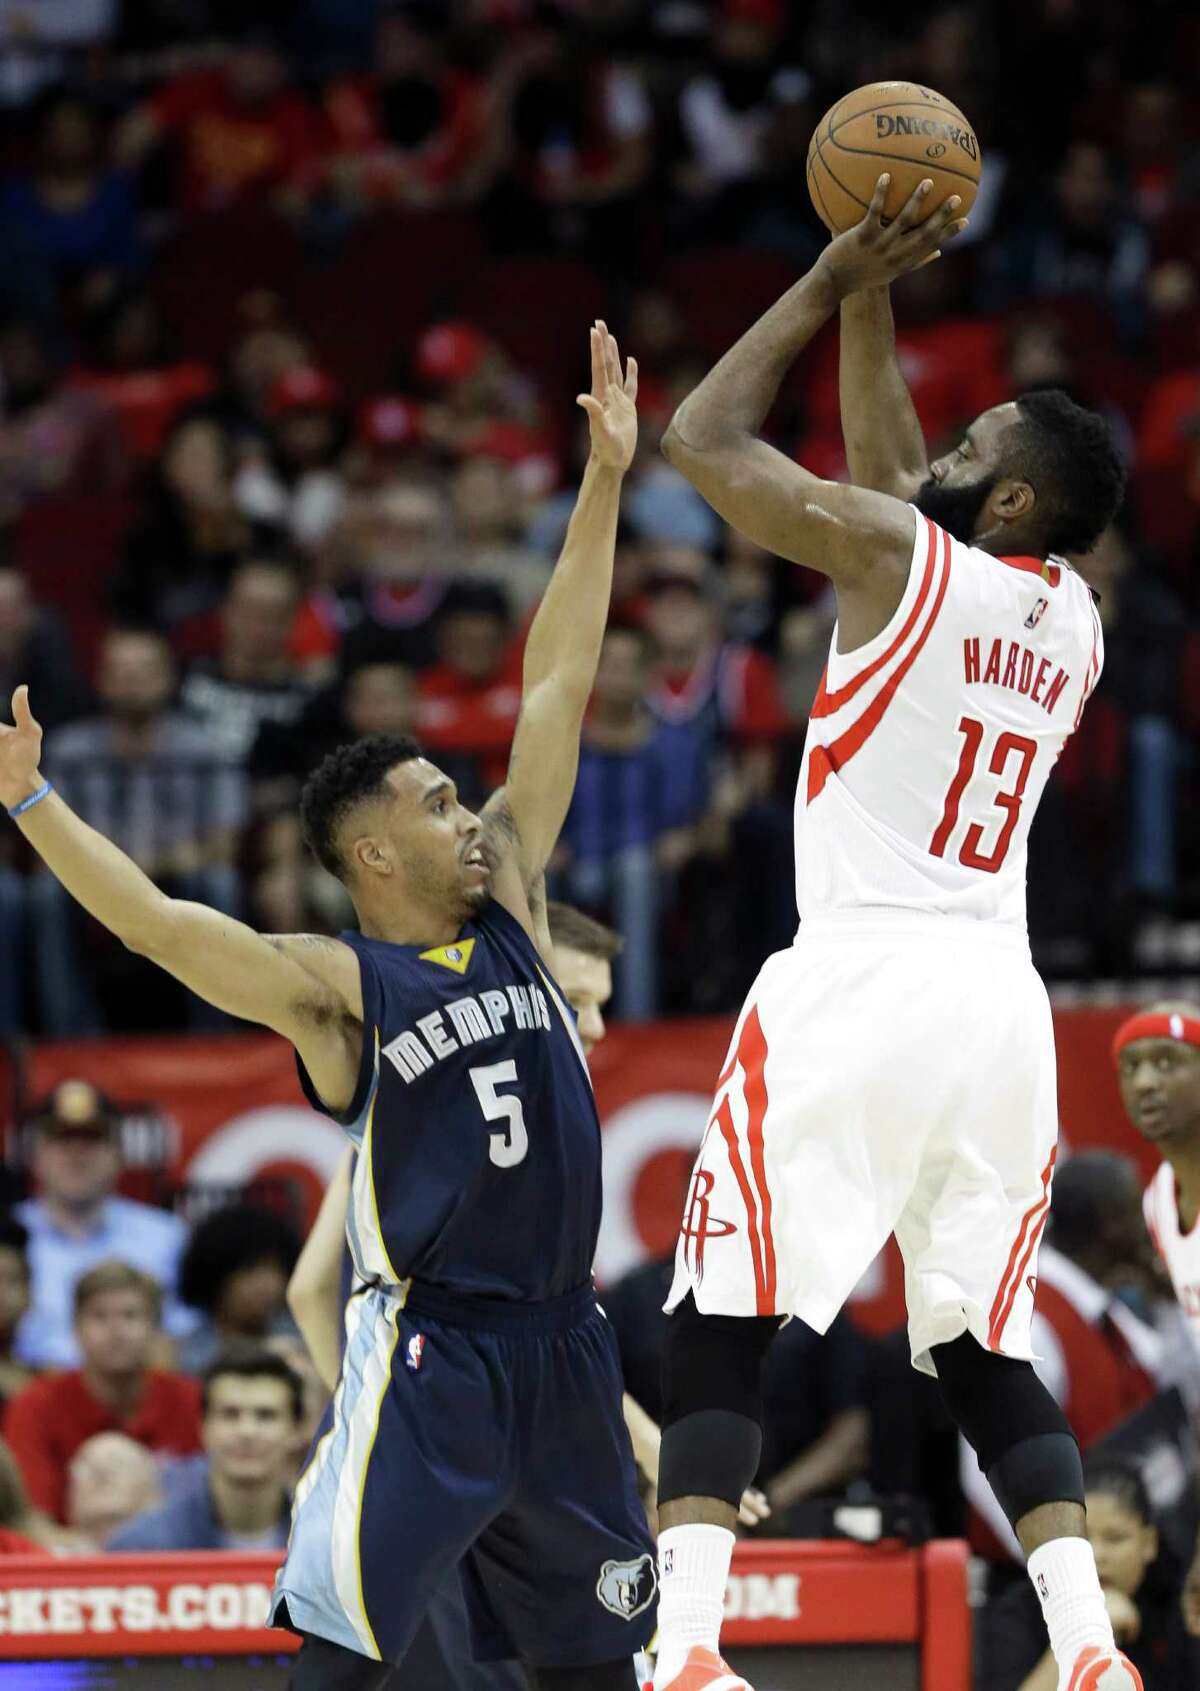 James Harden, who was held to 18 points, rises over the Grizzlies' Courtney Lee.